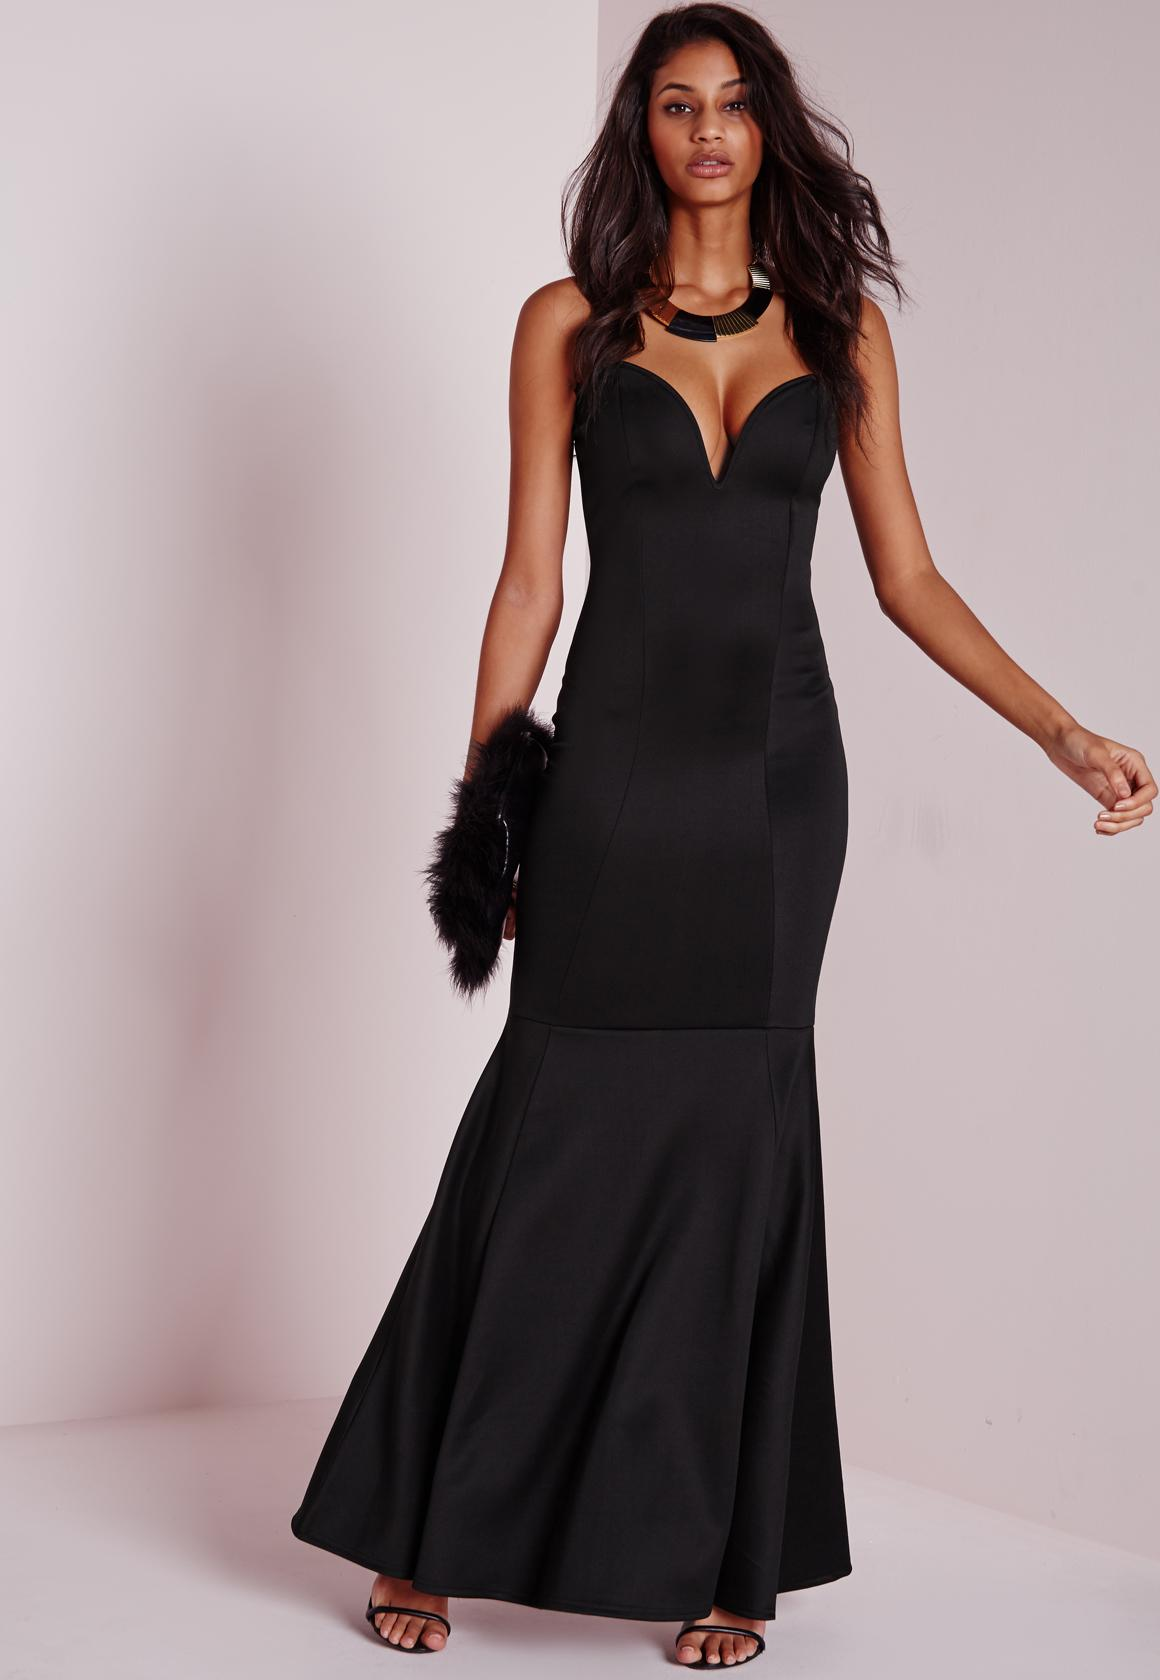 Sweetheart Neck Maxi Dress Black | Missguided Ireland